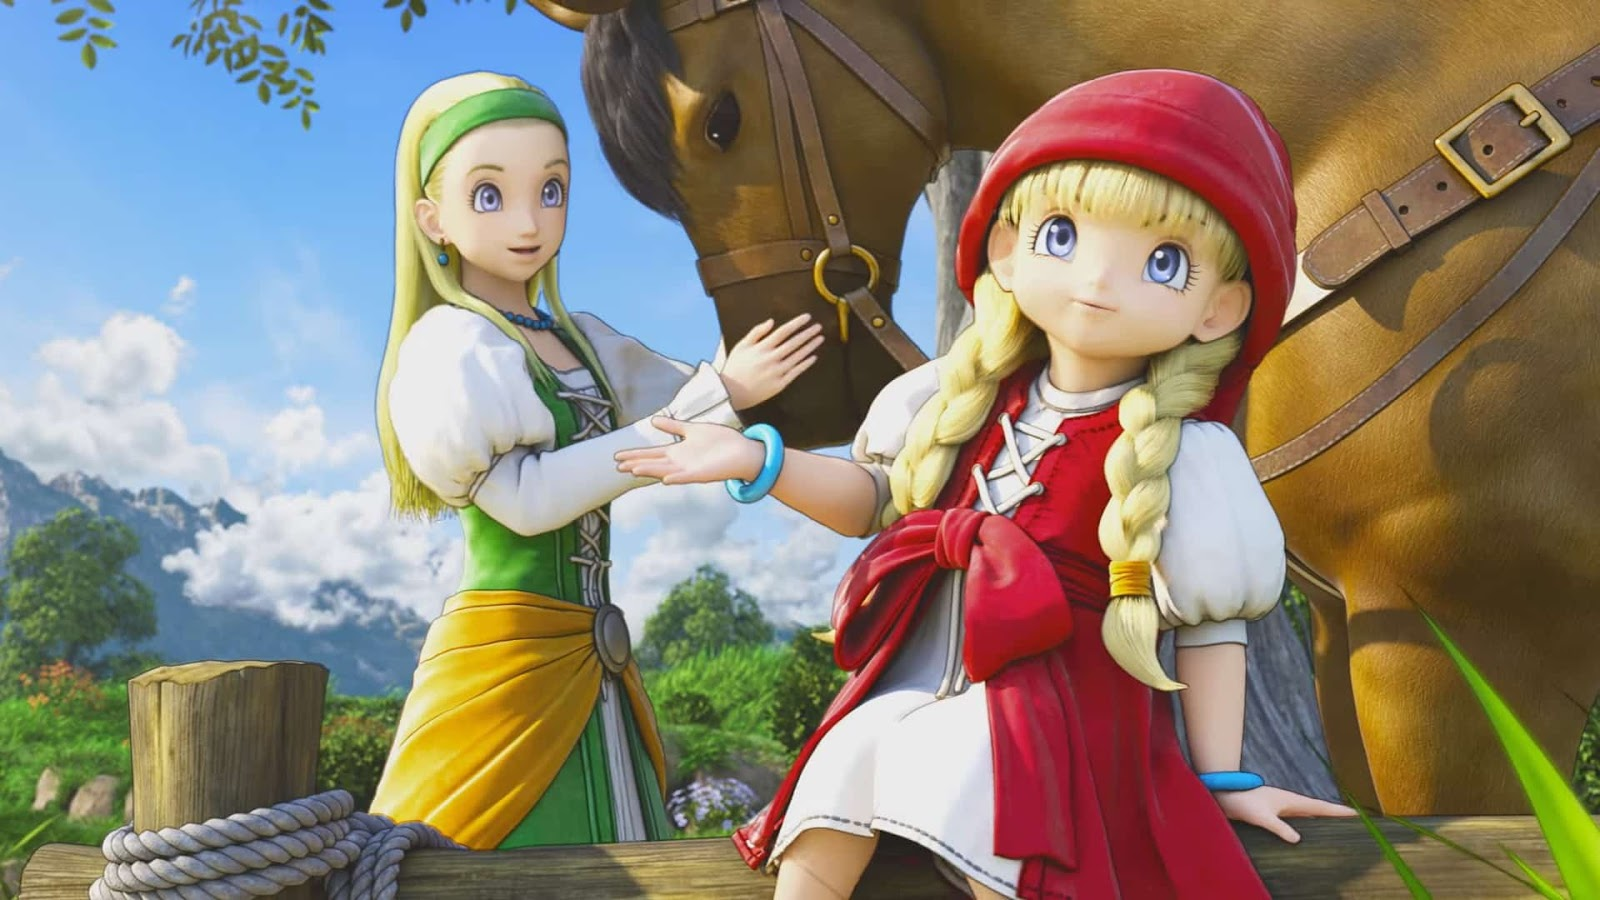 Dragon Quest XI: Echoes of An Elusive Age